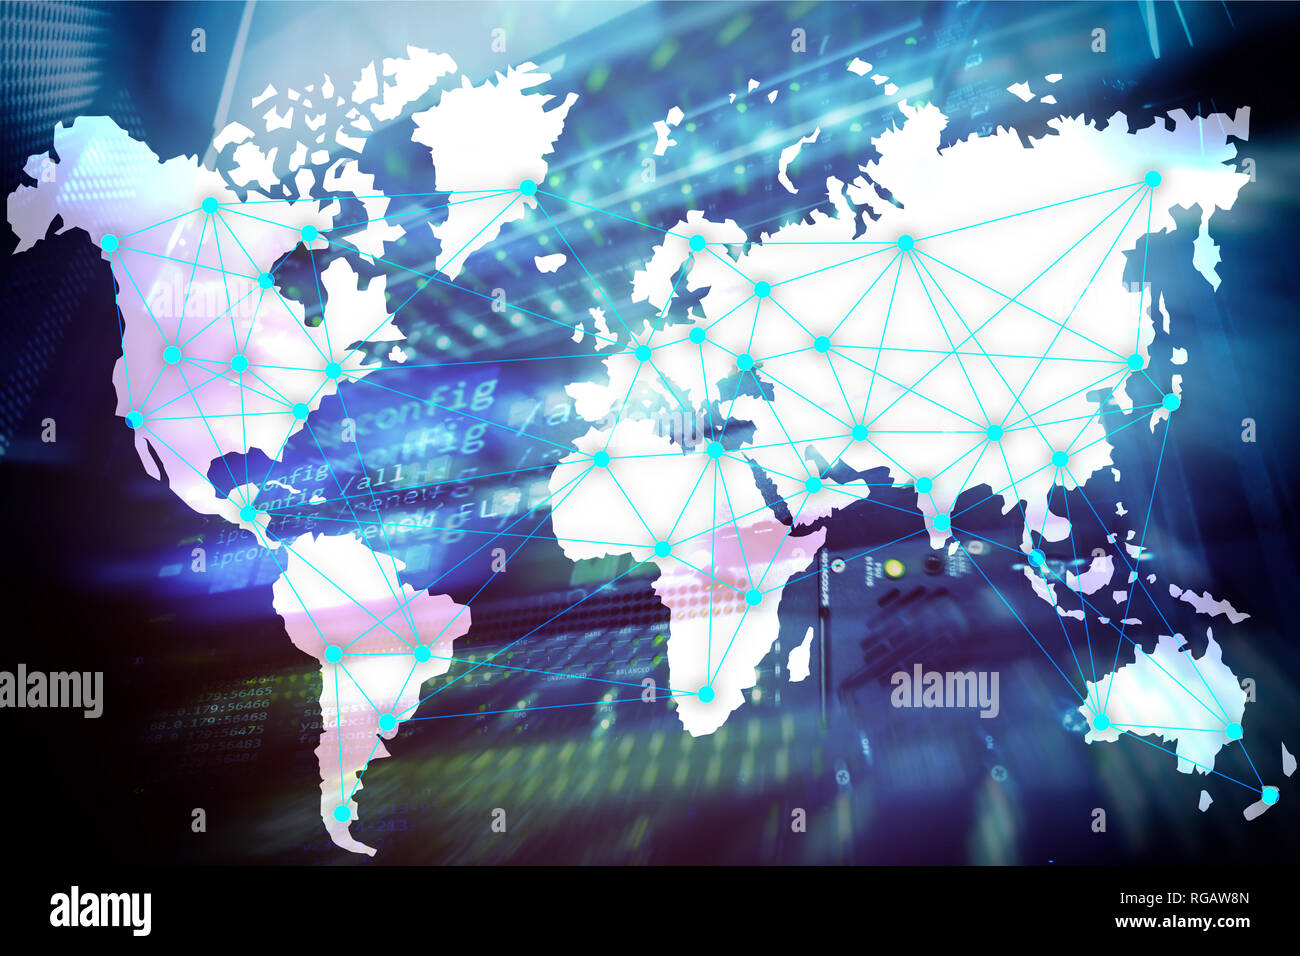 Internet and telecommunication concept with world map on